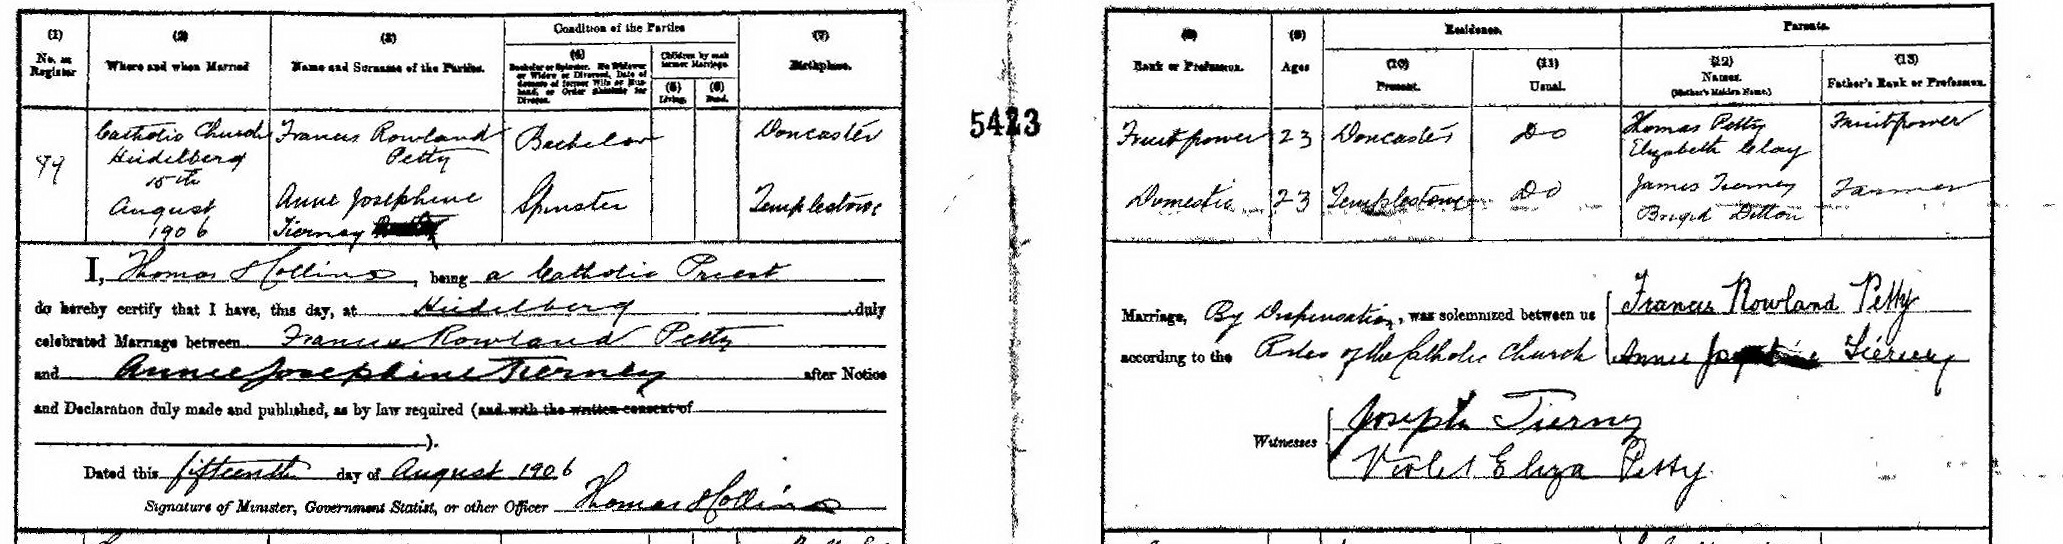 Francis Rowland Petty and Annie Josephine Tierney marriage certificate